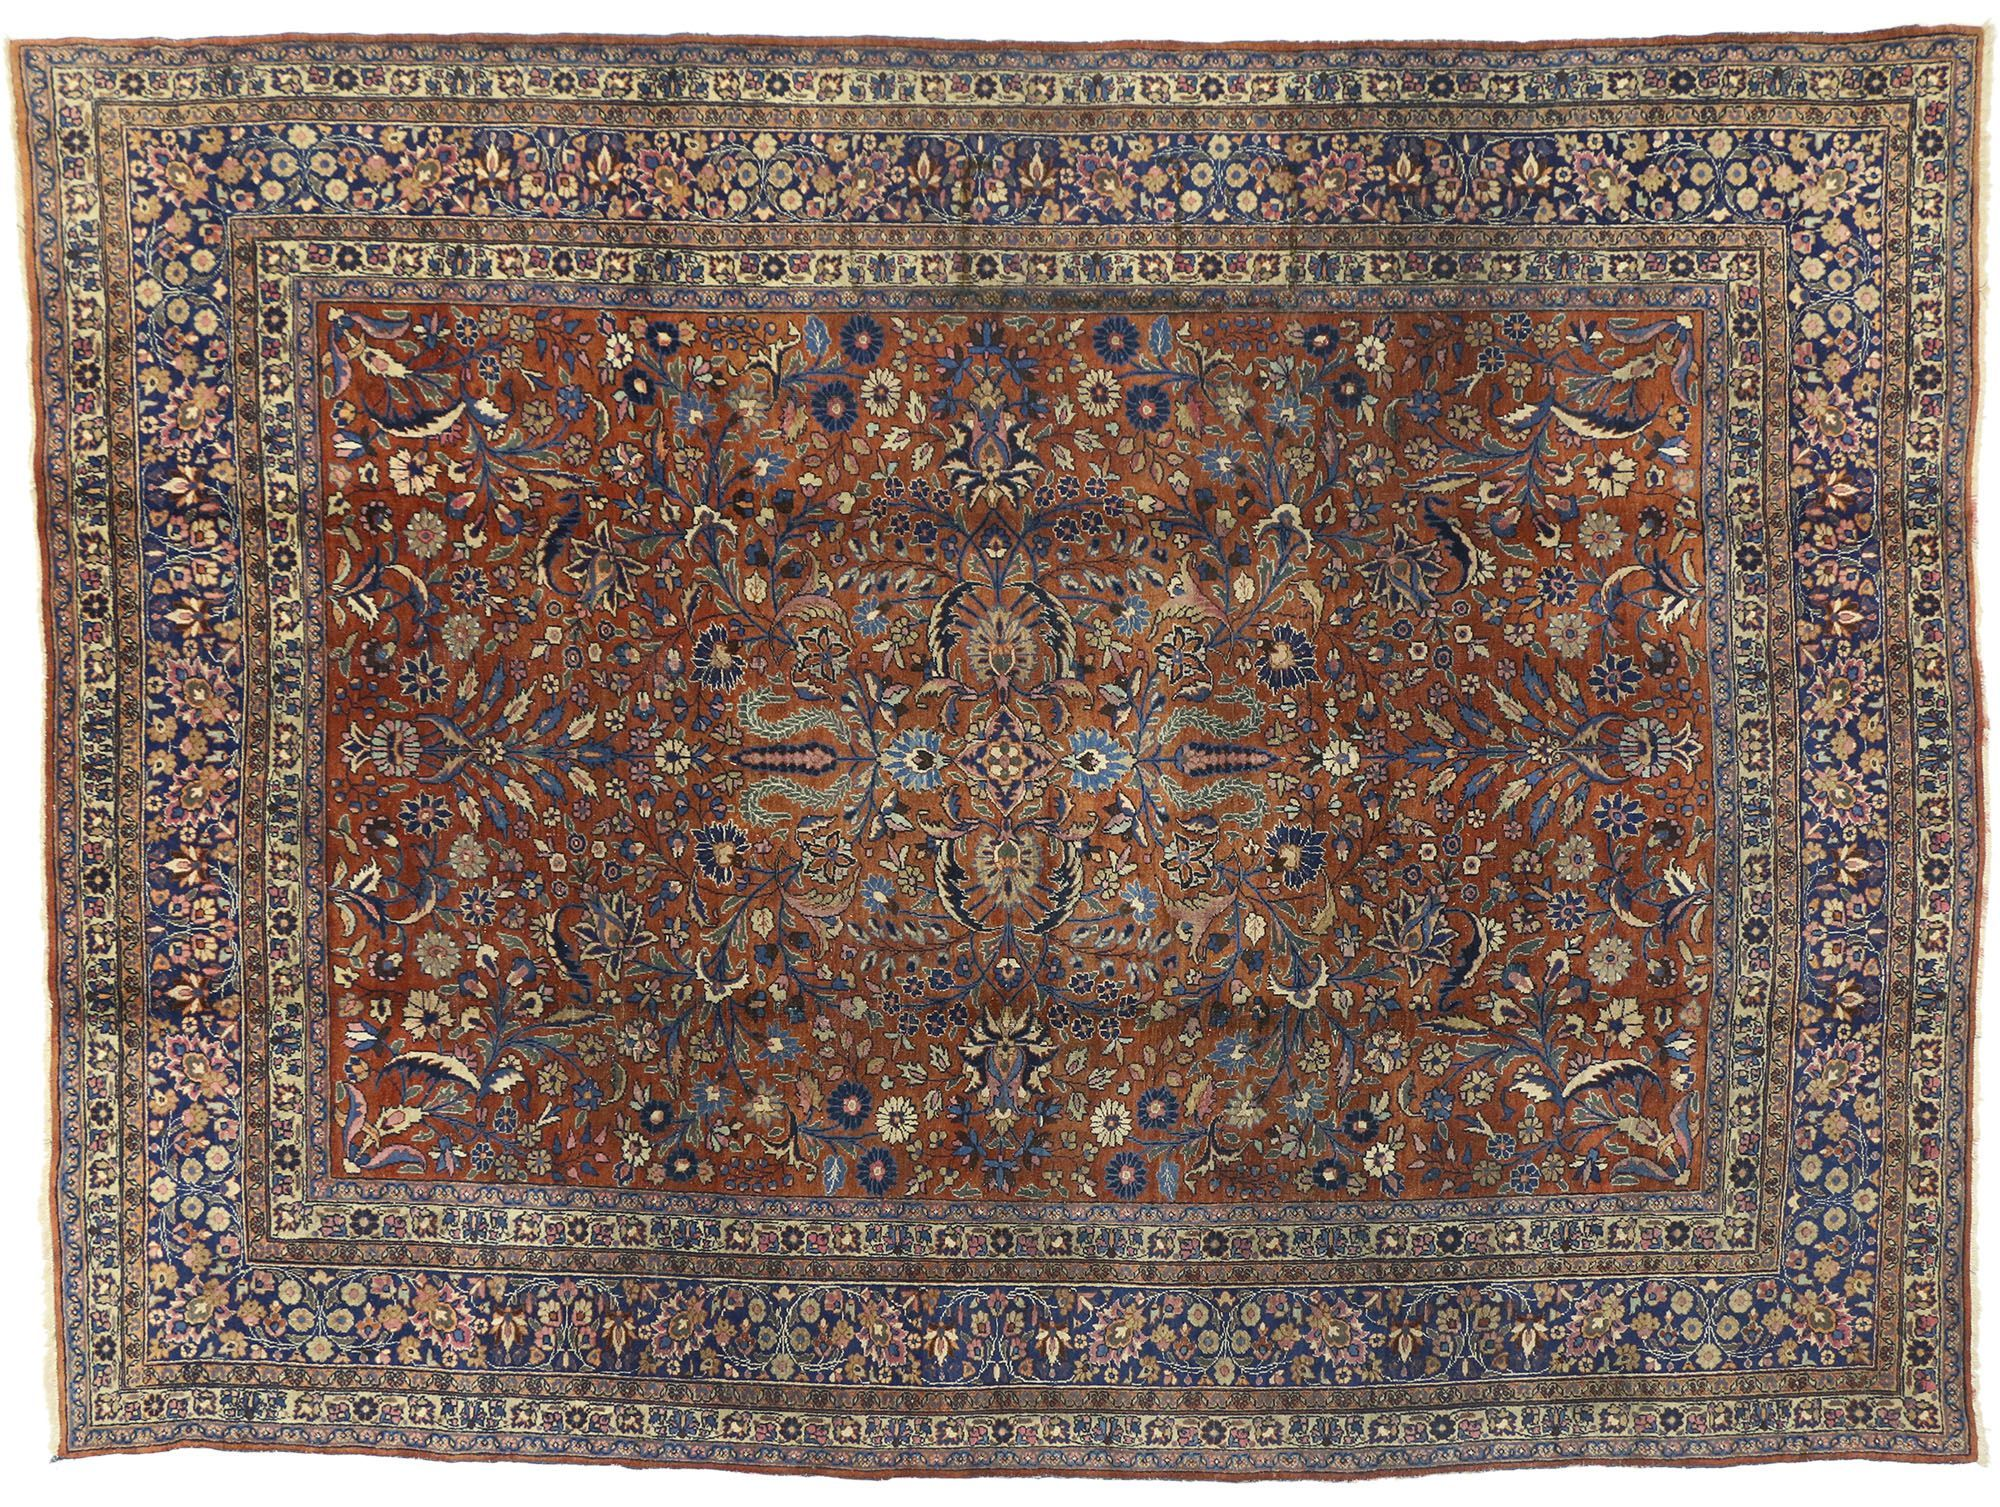 71212 Antique Persian Mashhad Rug With Traditional Style 08 10 X 12 00 From Esmaili Rugs Collection This Hand In 2020 Antique Persian Carpet Carpet Fabric Dark Carpet